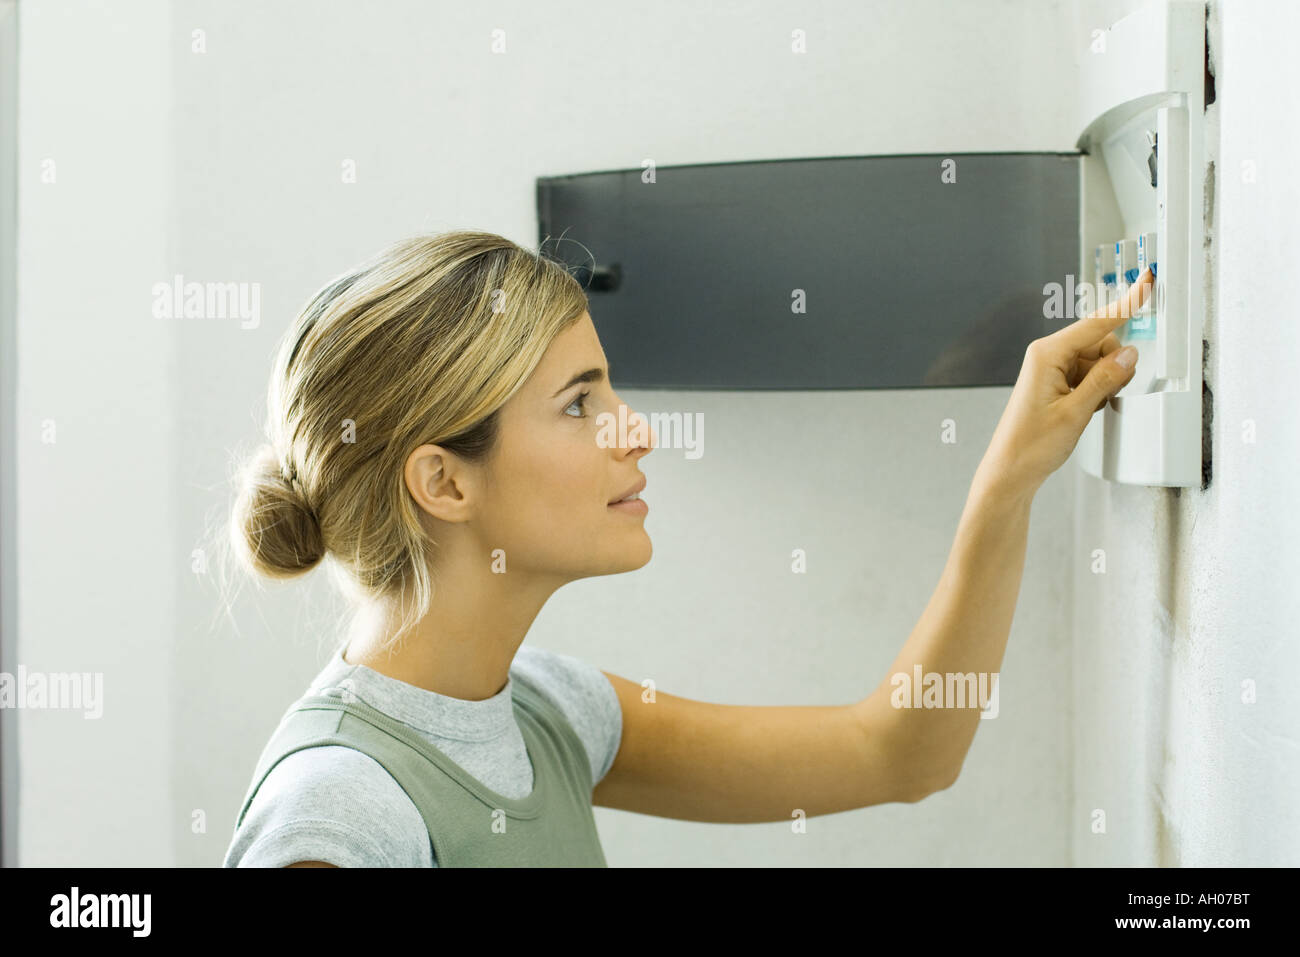 Fuse Box Stock Photos Images Alamy Fix Woman Pushing Lever In Image